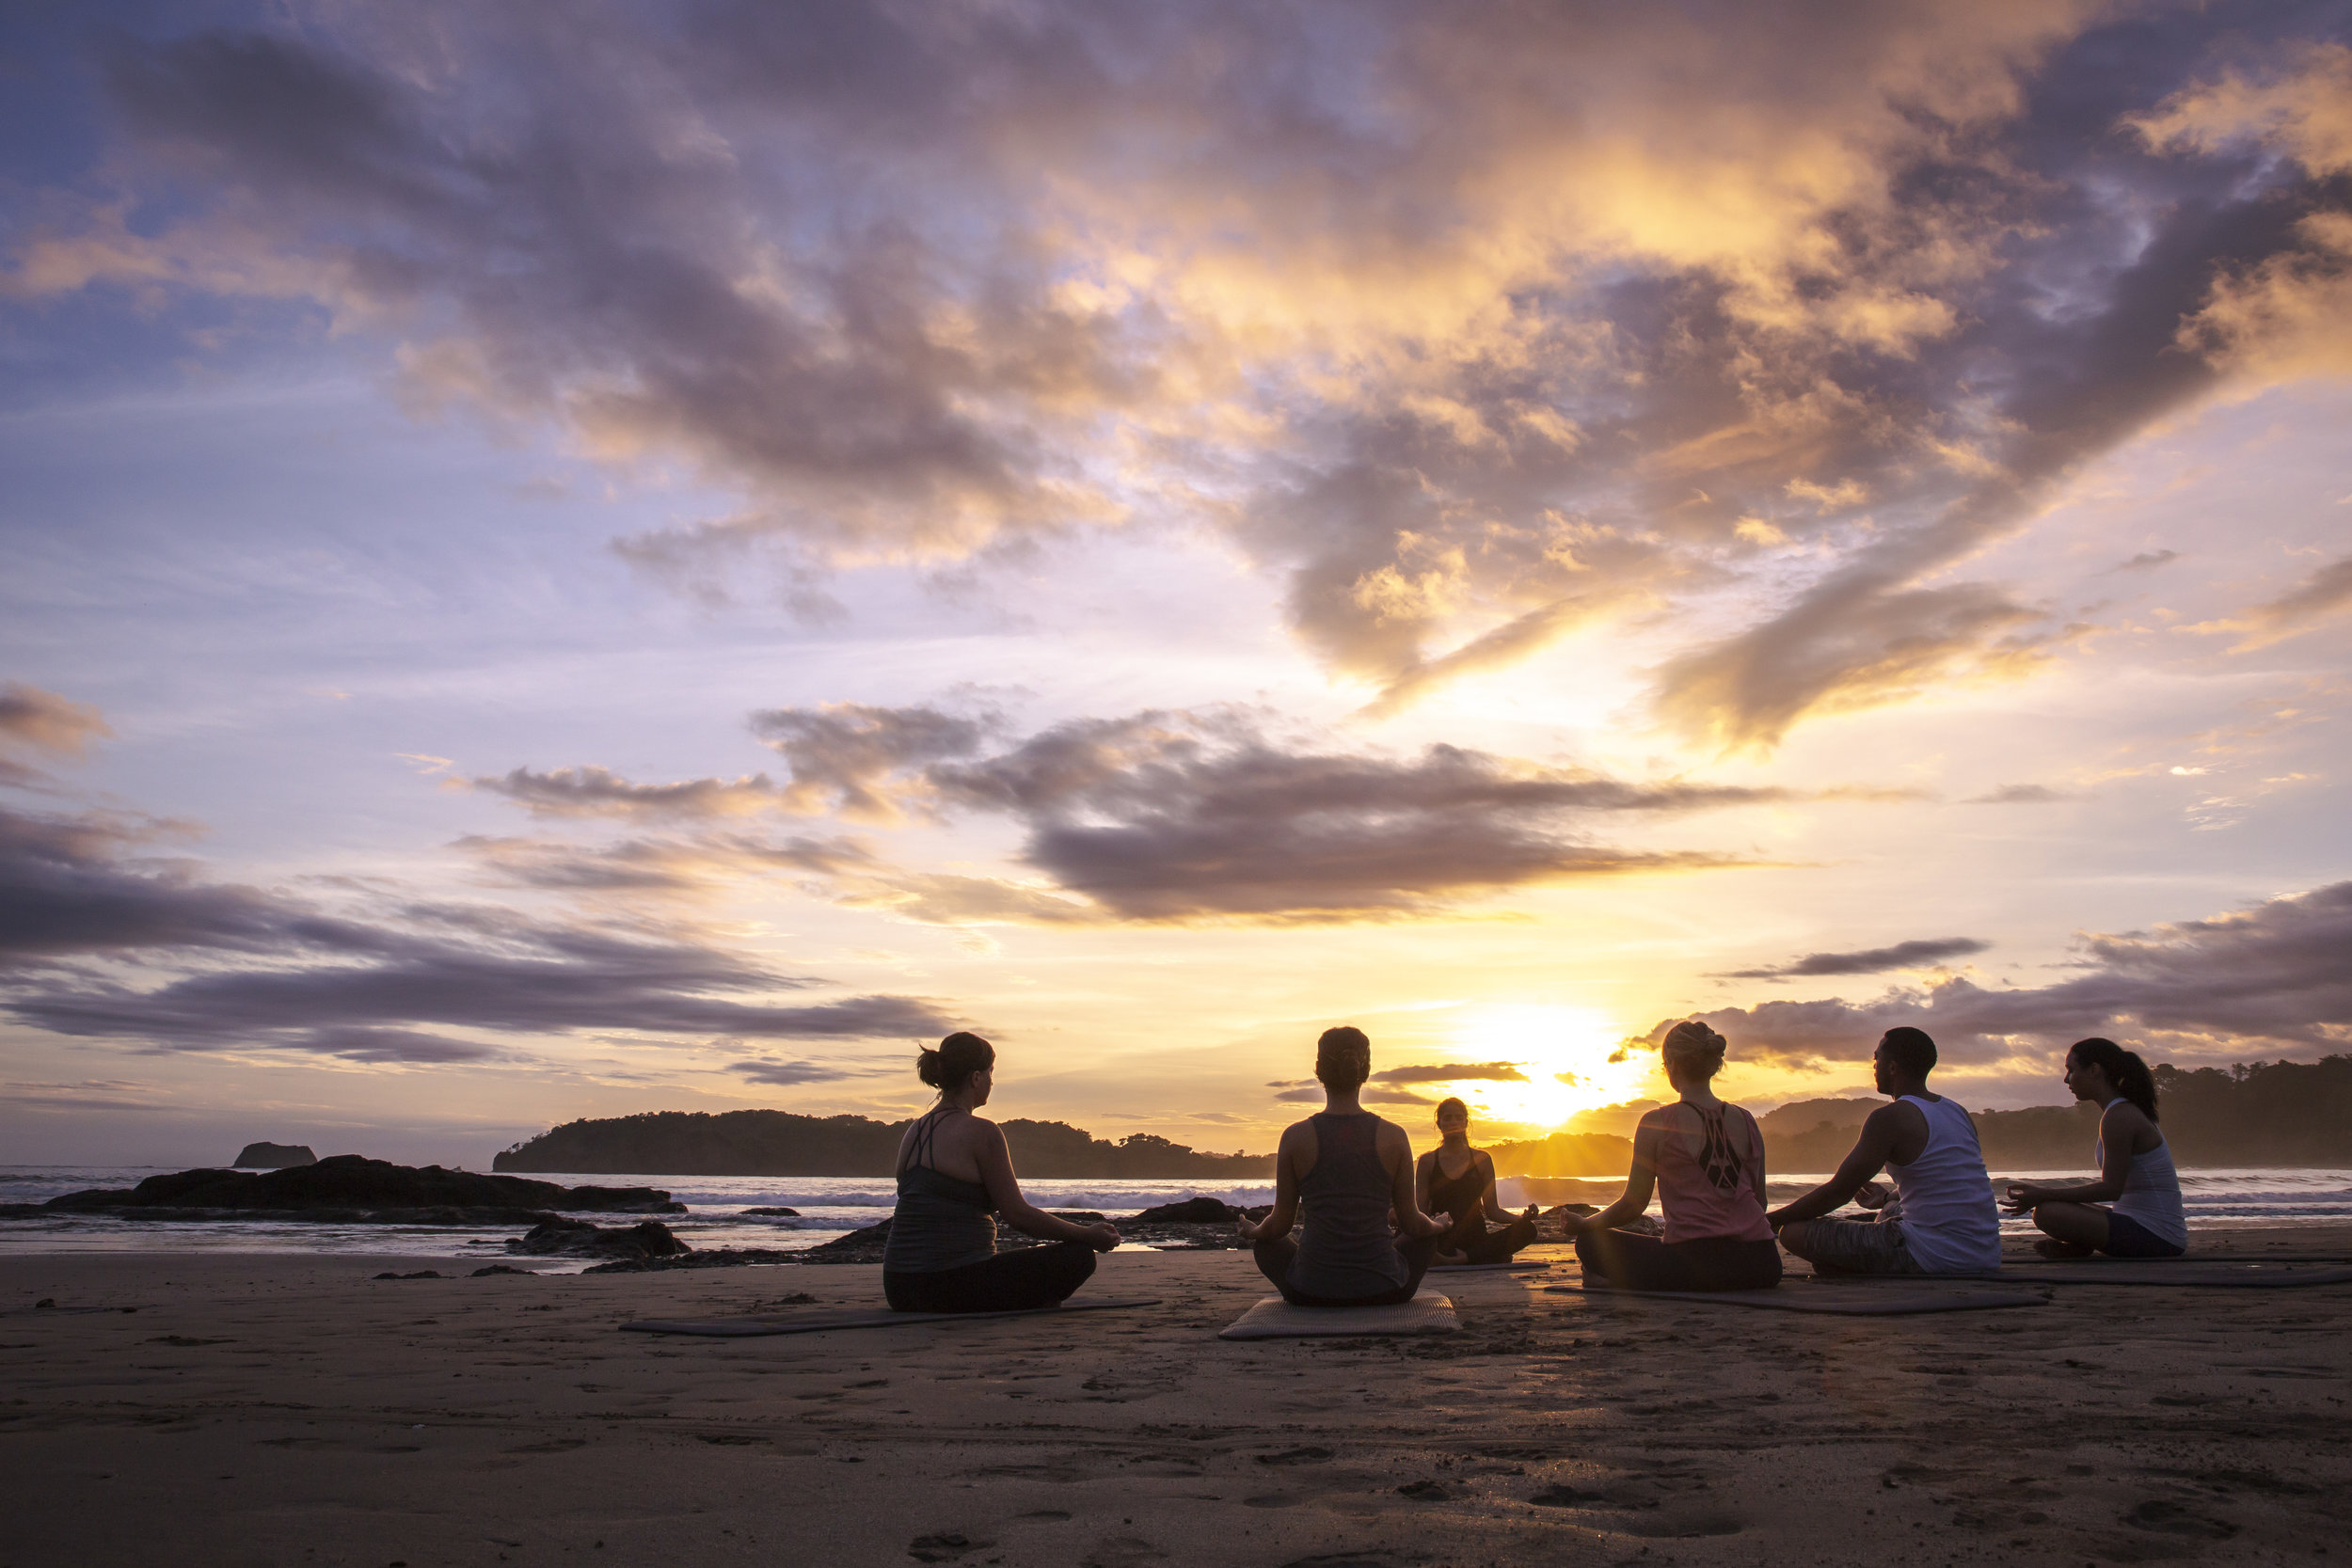 Costa Rica Playa Carrillo Beach Sunset Yoga Meditation Group - 2018 0W3A3398 Lg RGB.jpg